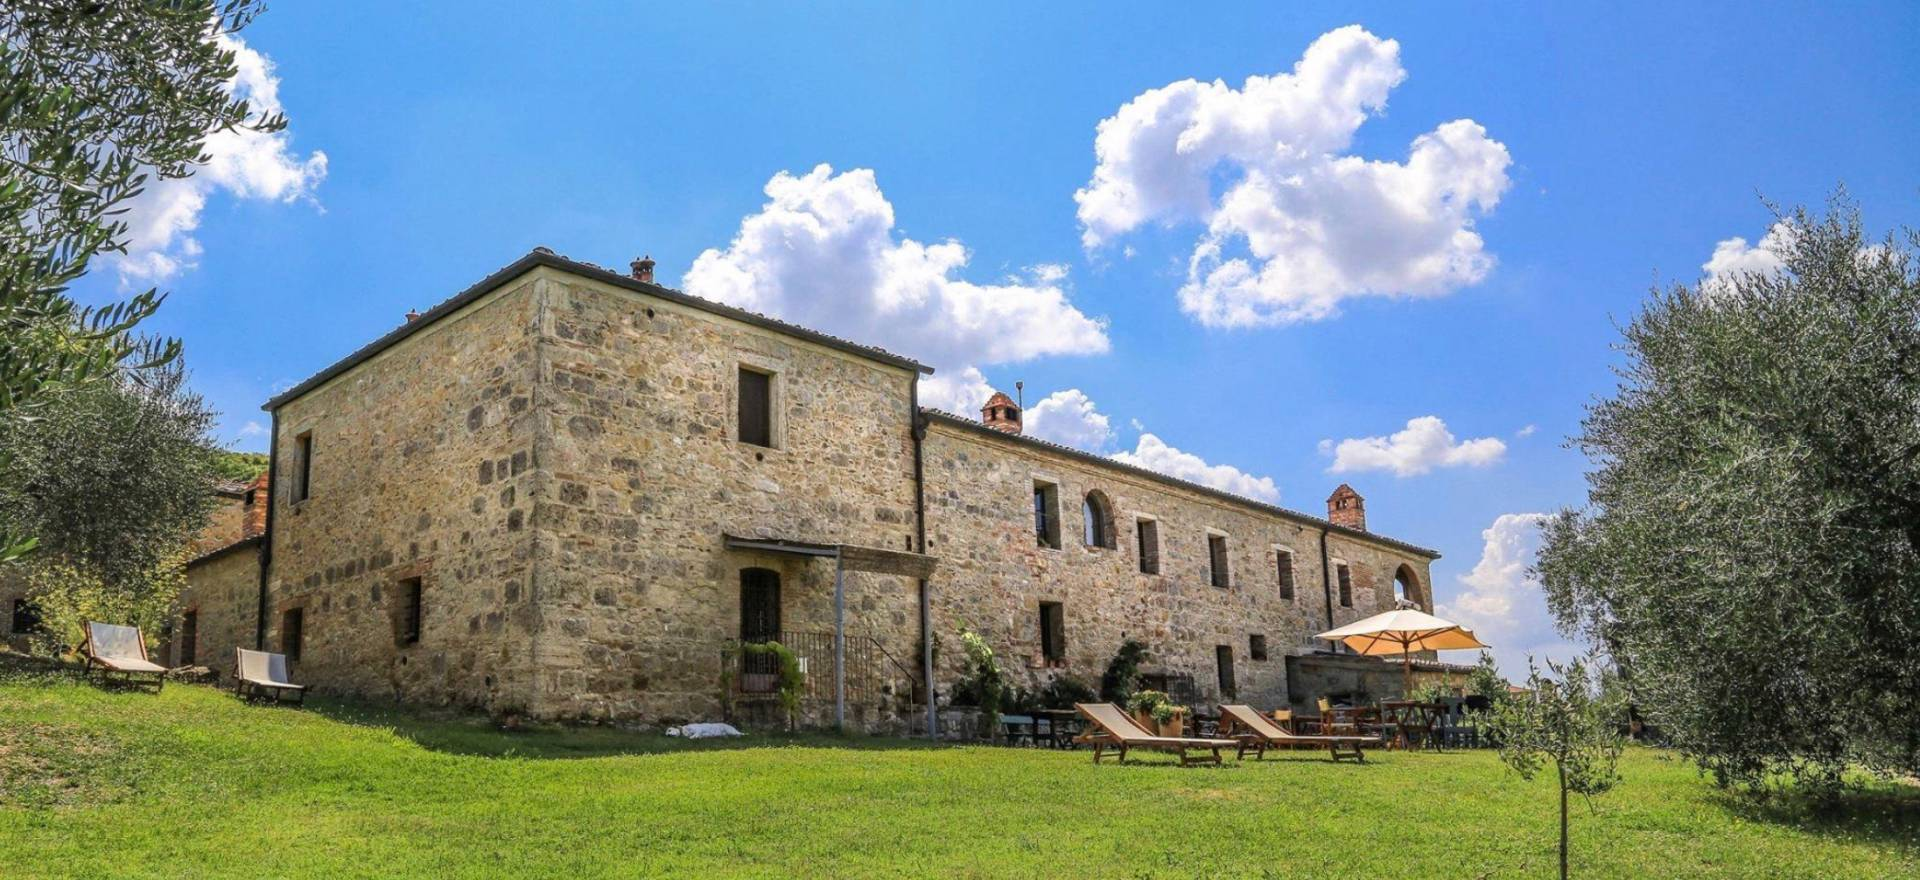 Agriturismo Tuscany Wonderful agriturismo near Pienza with restaurant